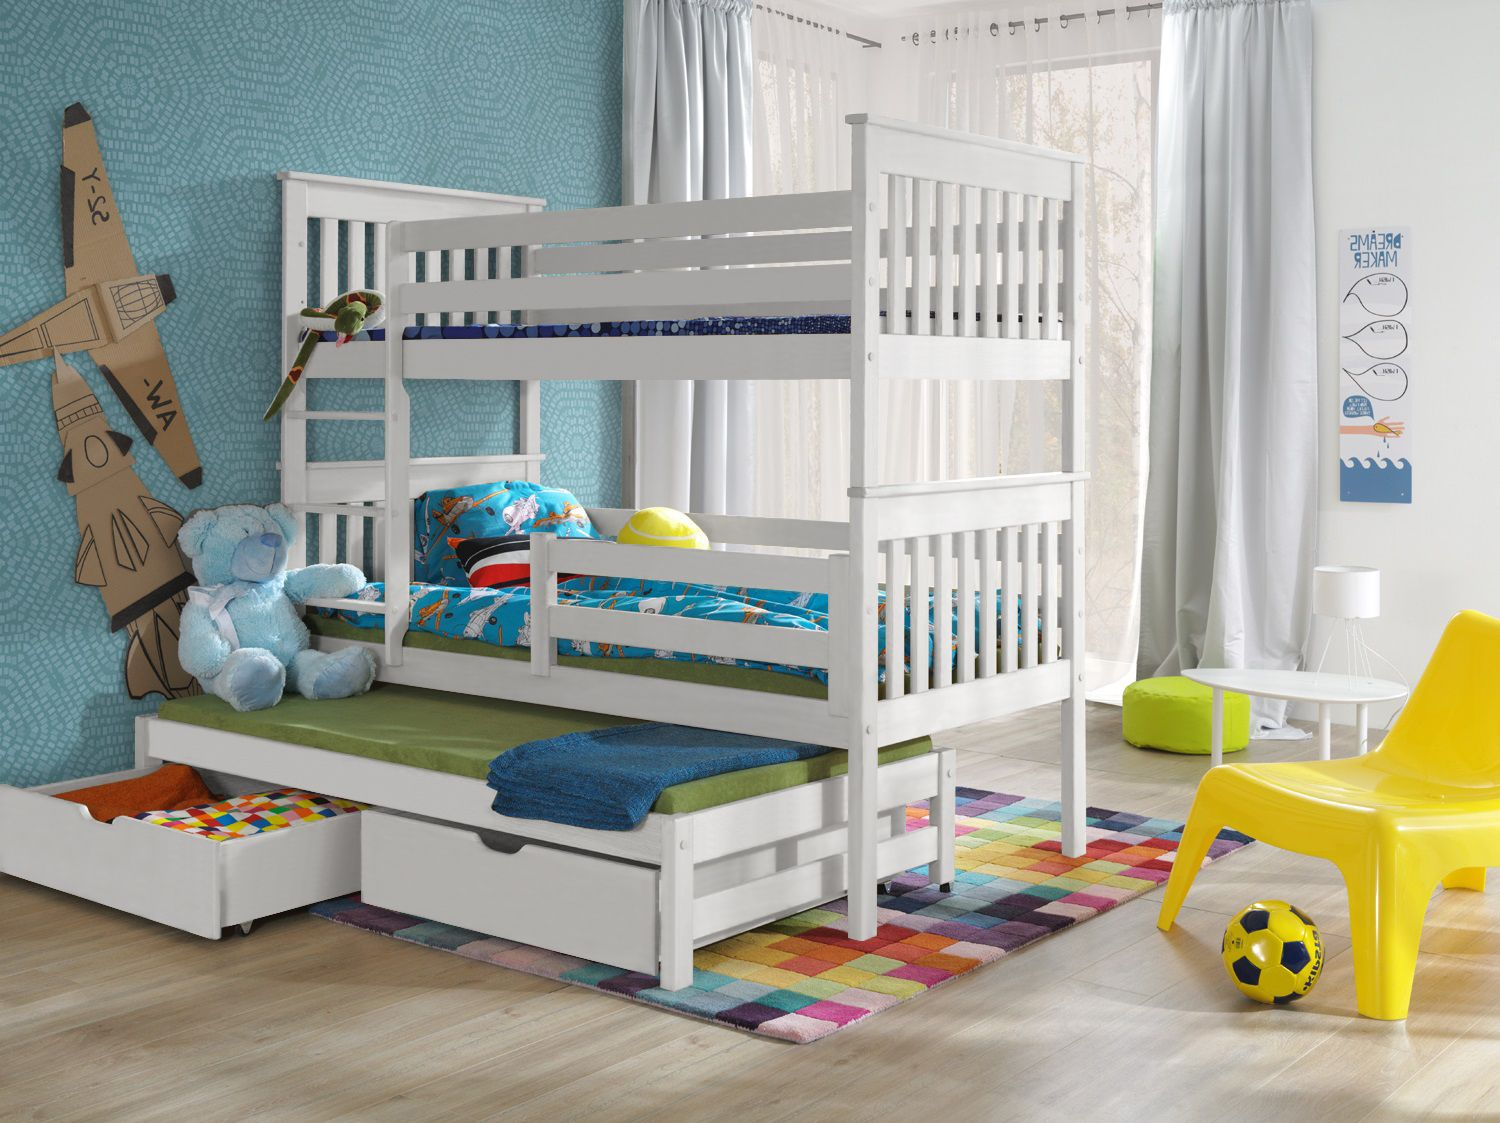 Picture of: White Triple Sleeper Wooden Bunk Beds With Storage Dream 3